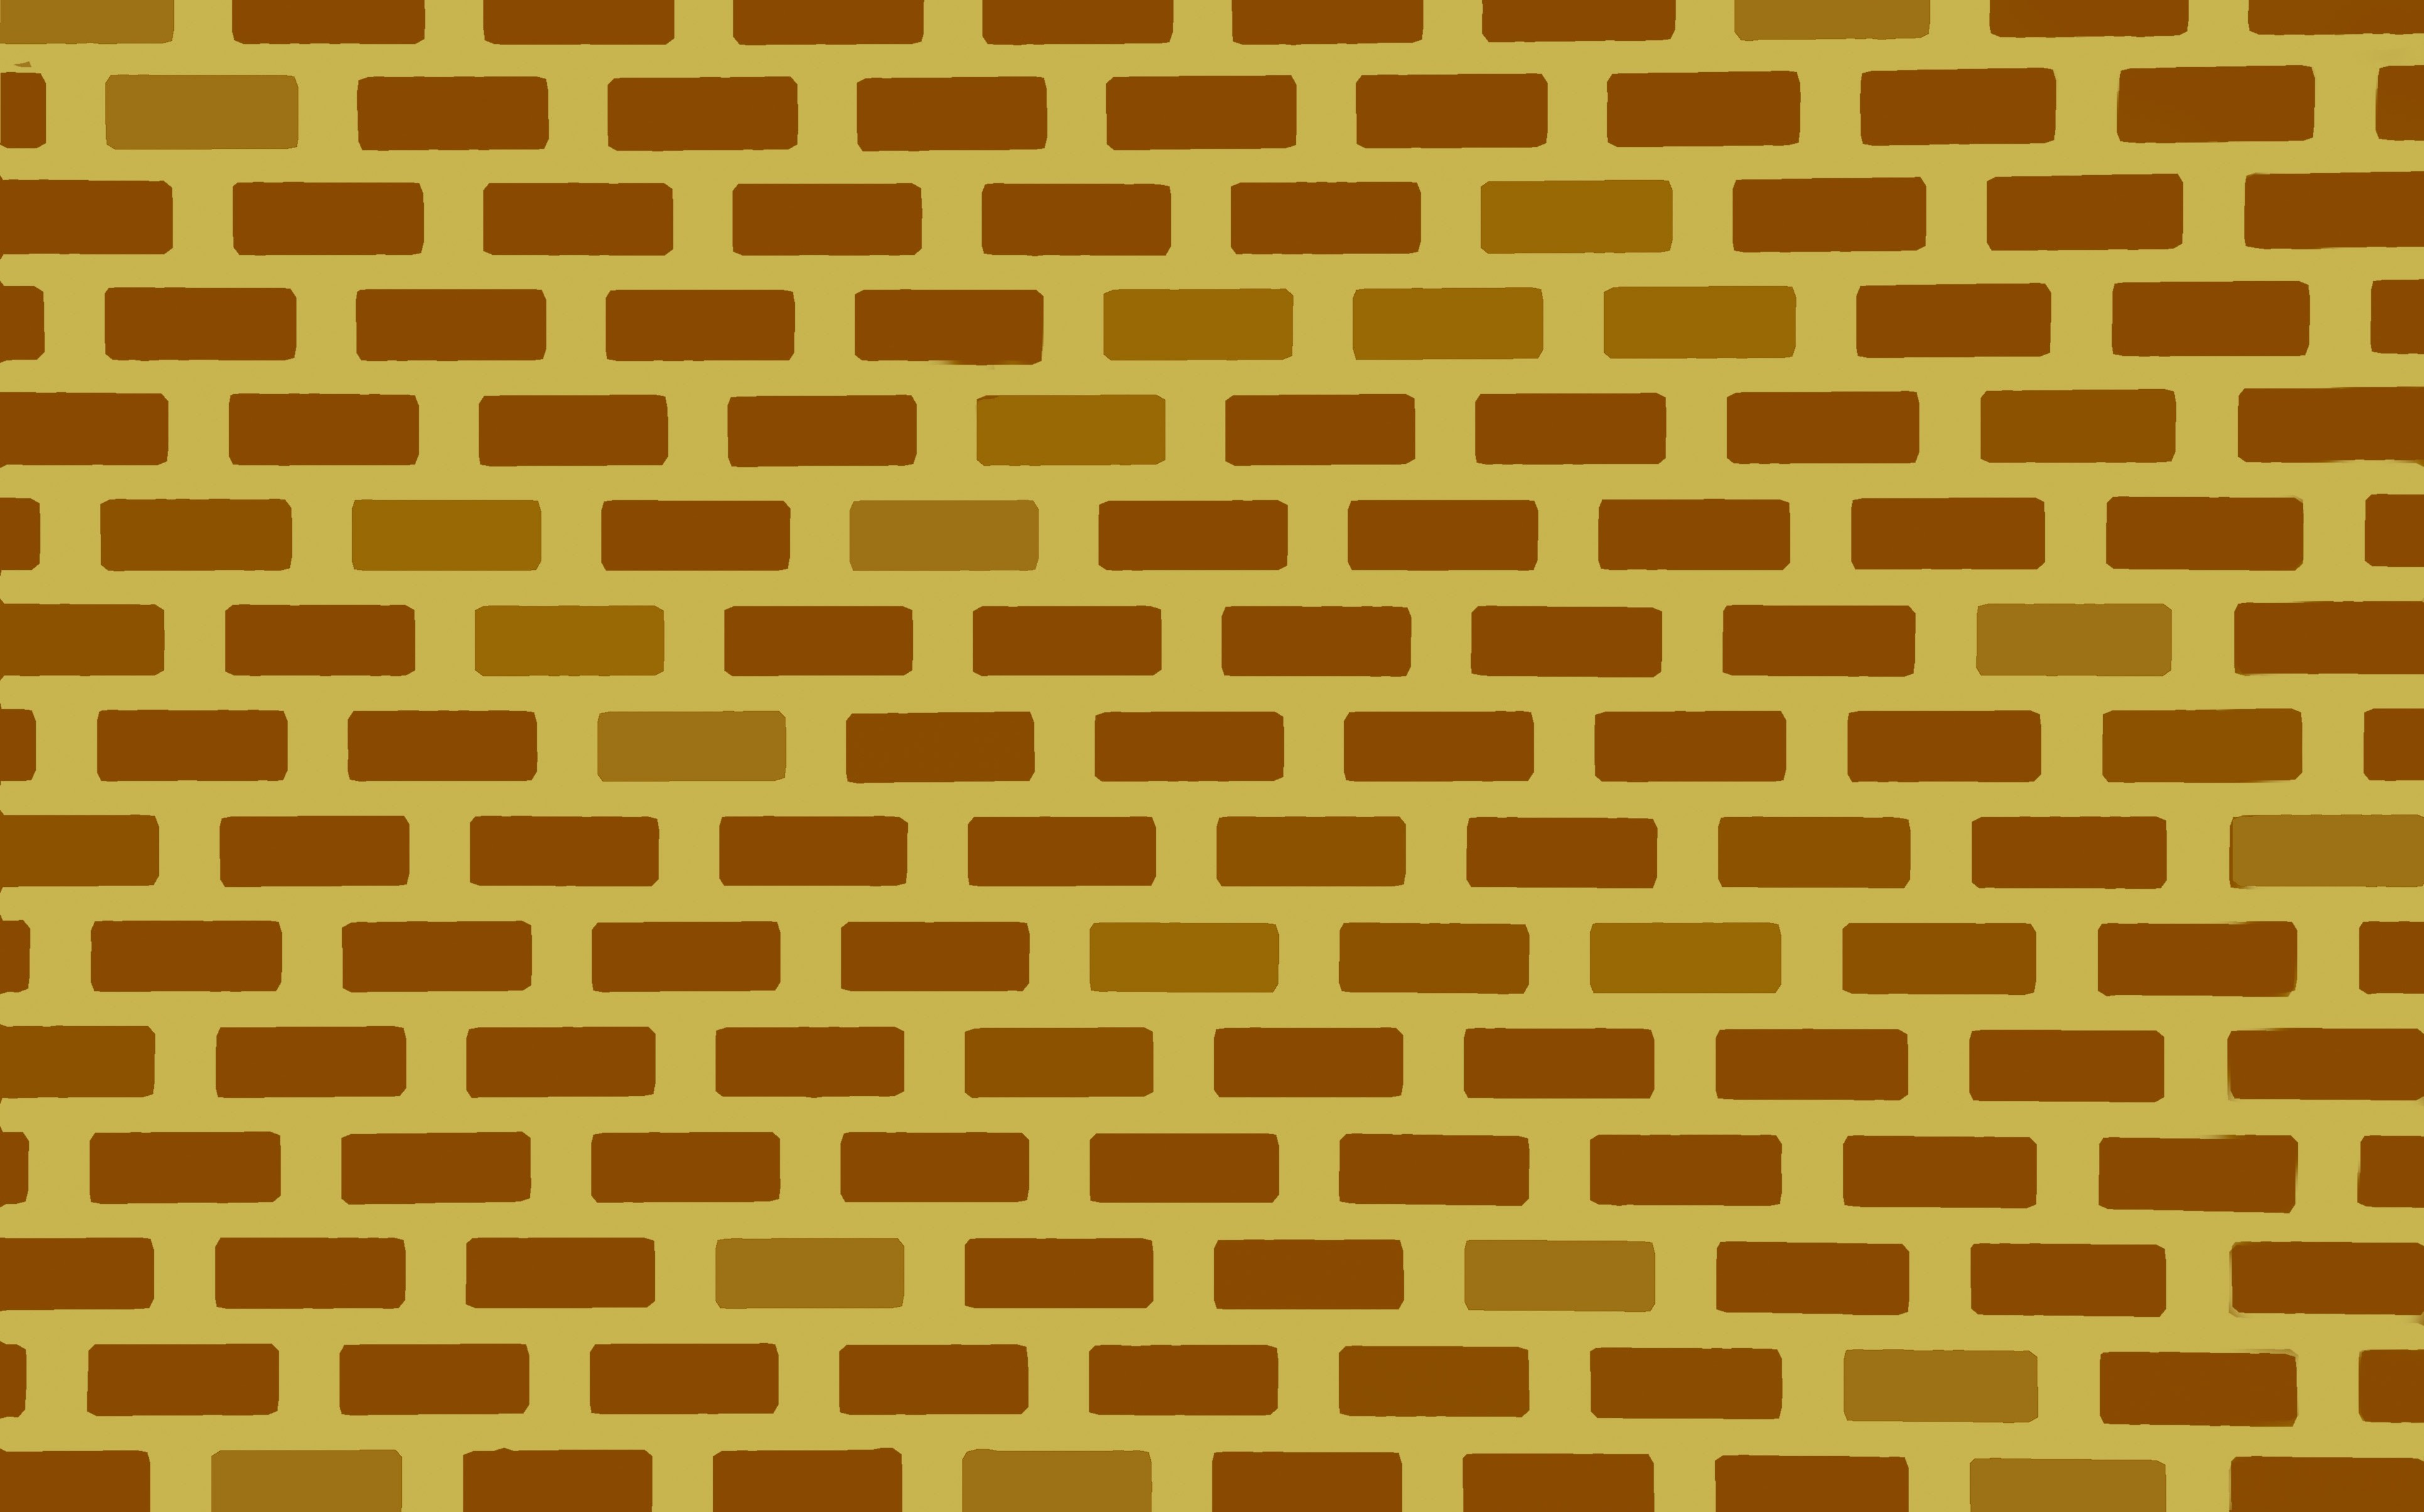 tessellated rectangles lined up as bricks